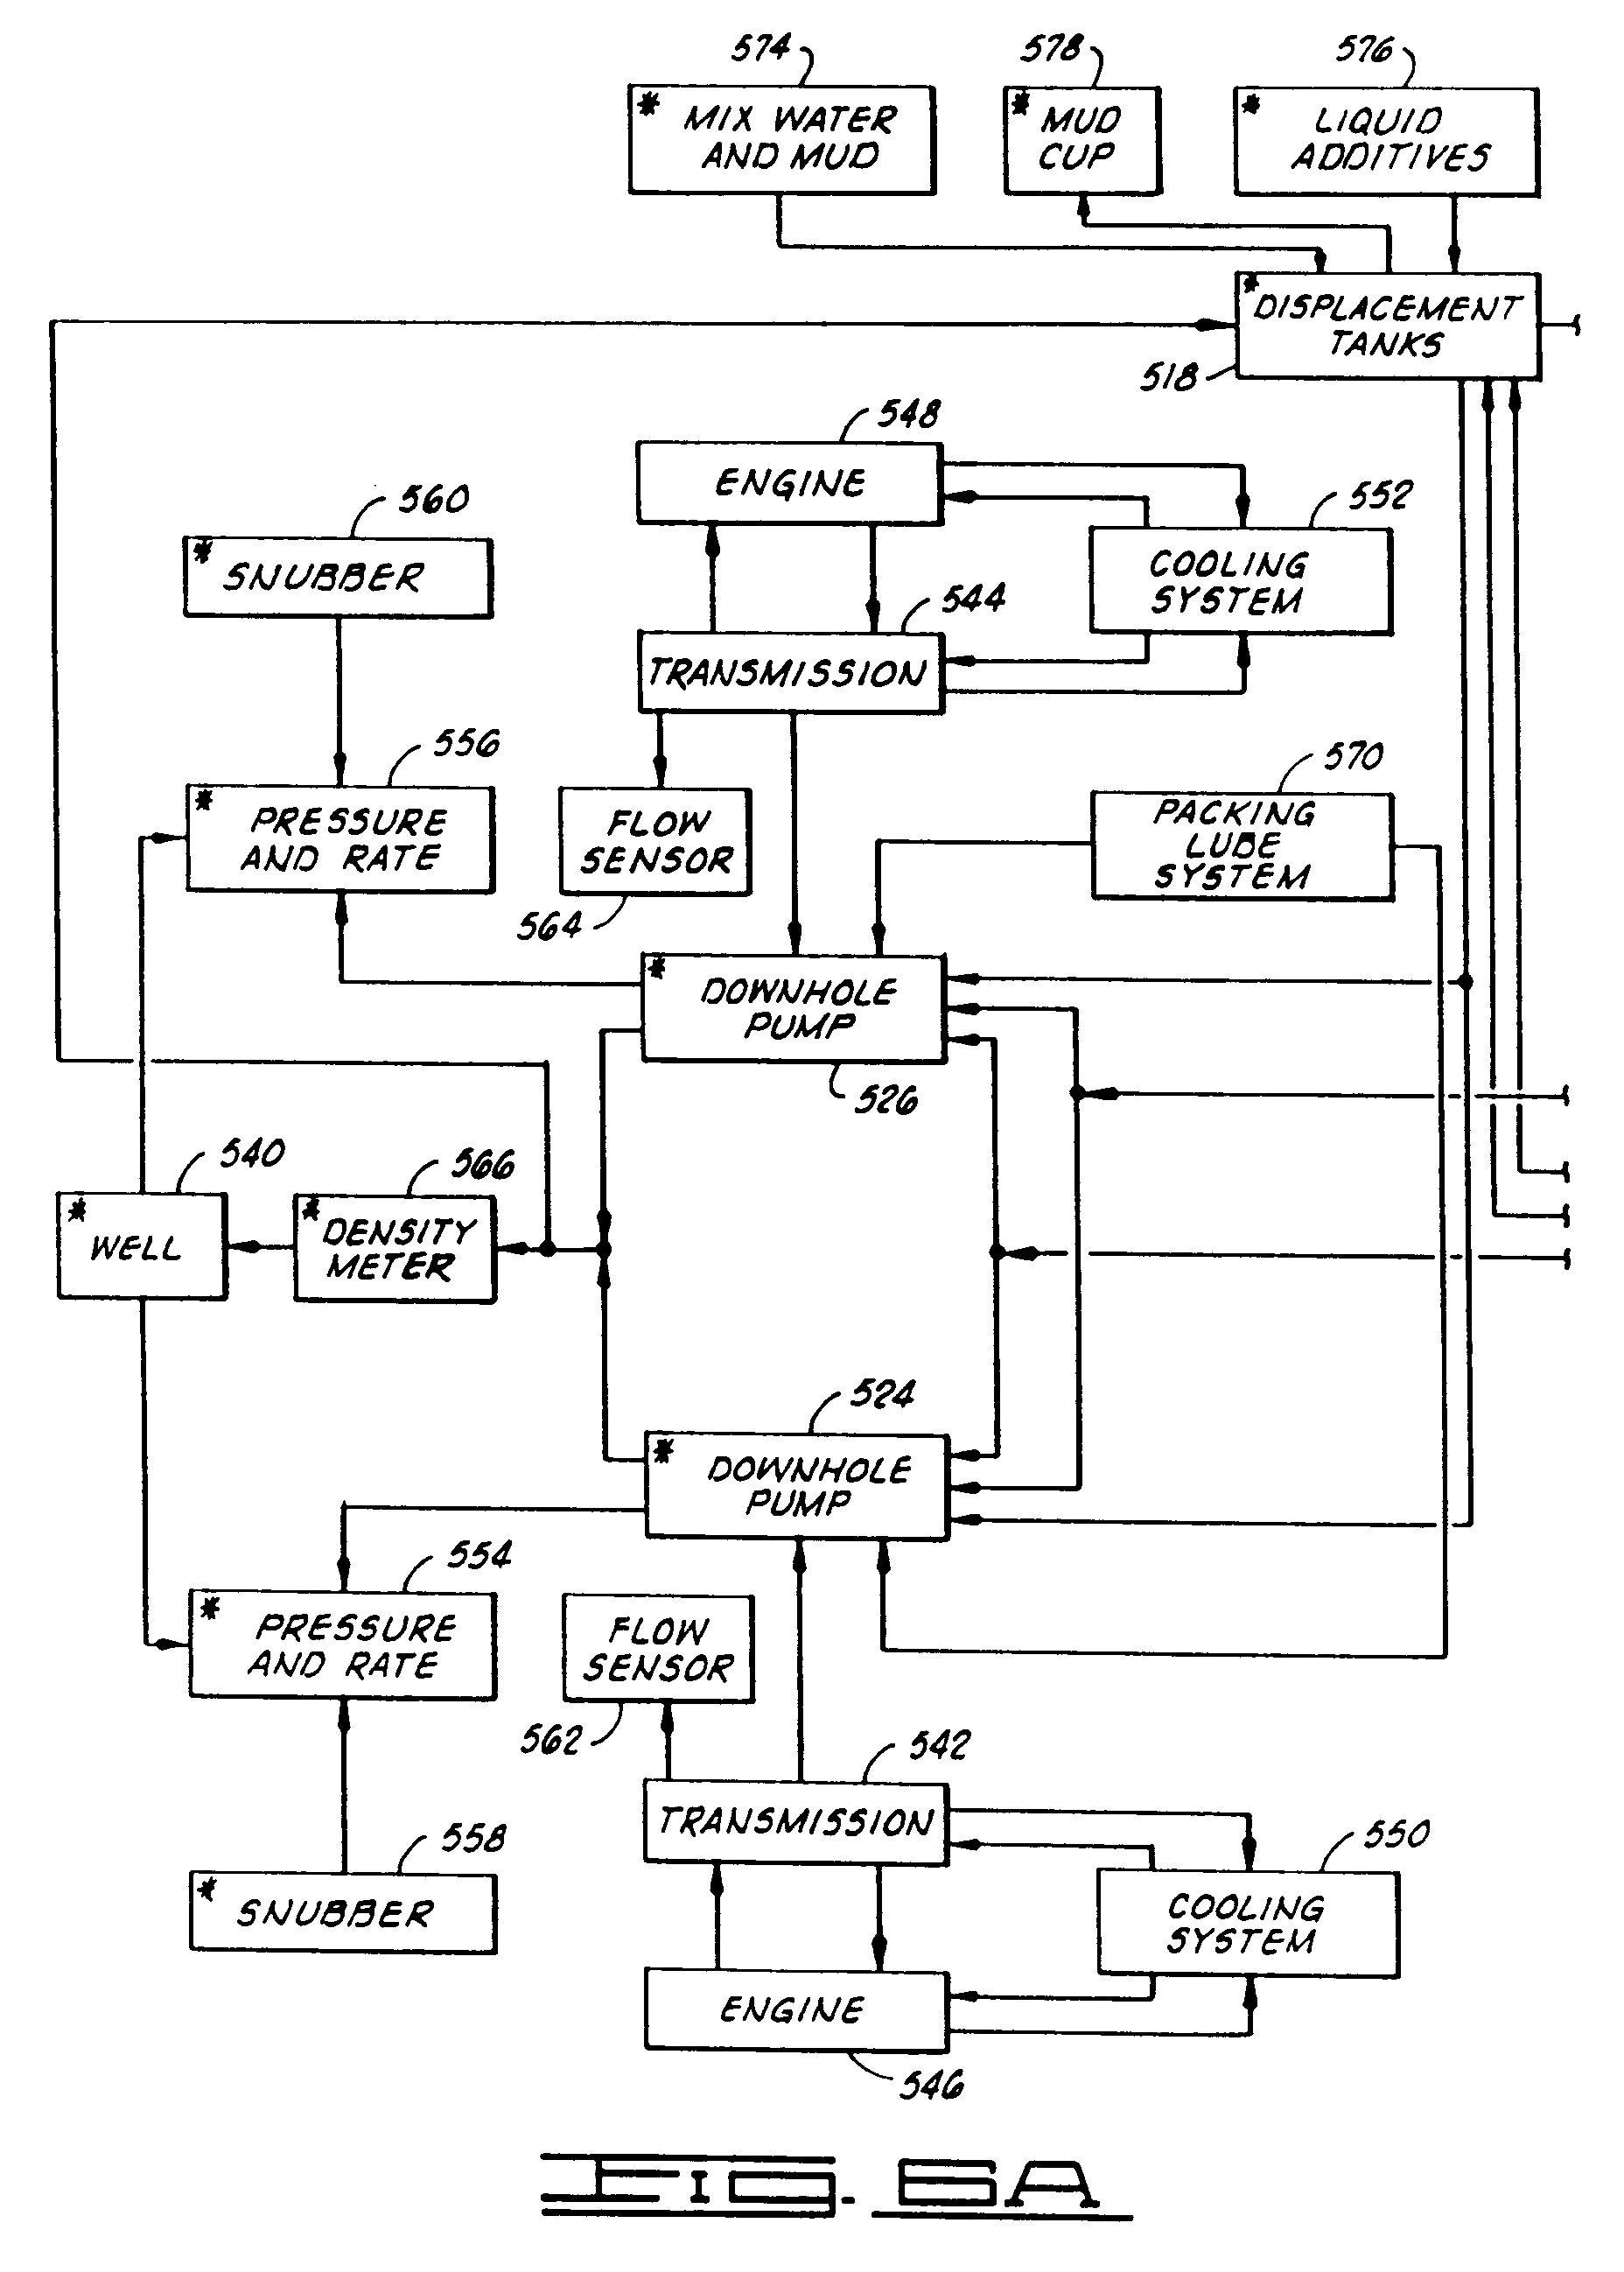 jacobs engine brake wiring diagram dexter trailer brake wiring diagram cat 3406e jake brake wiring diagram - somurich.com